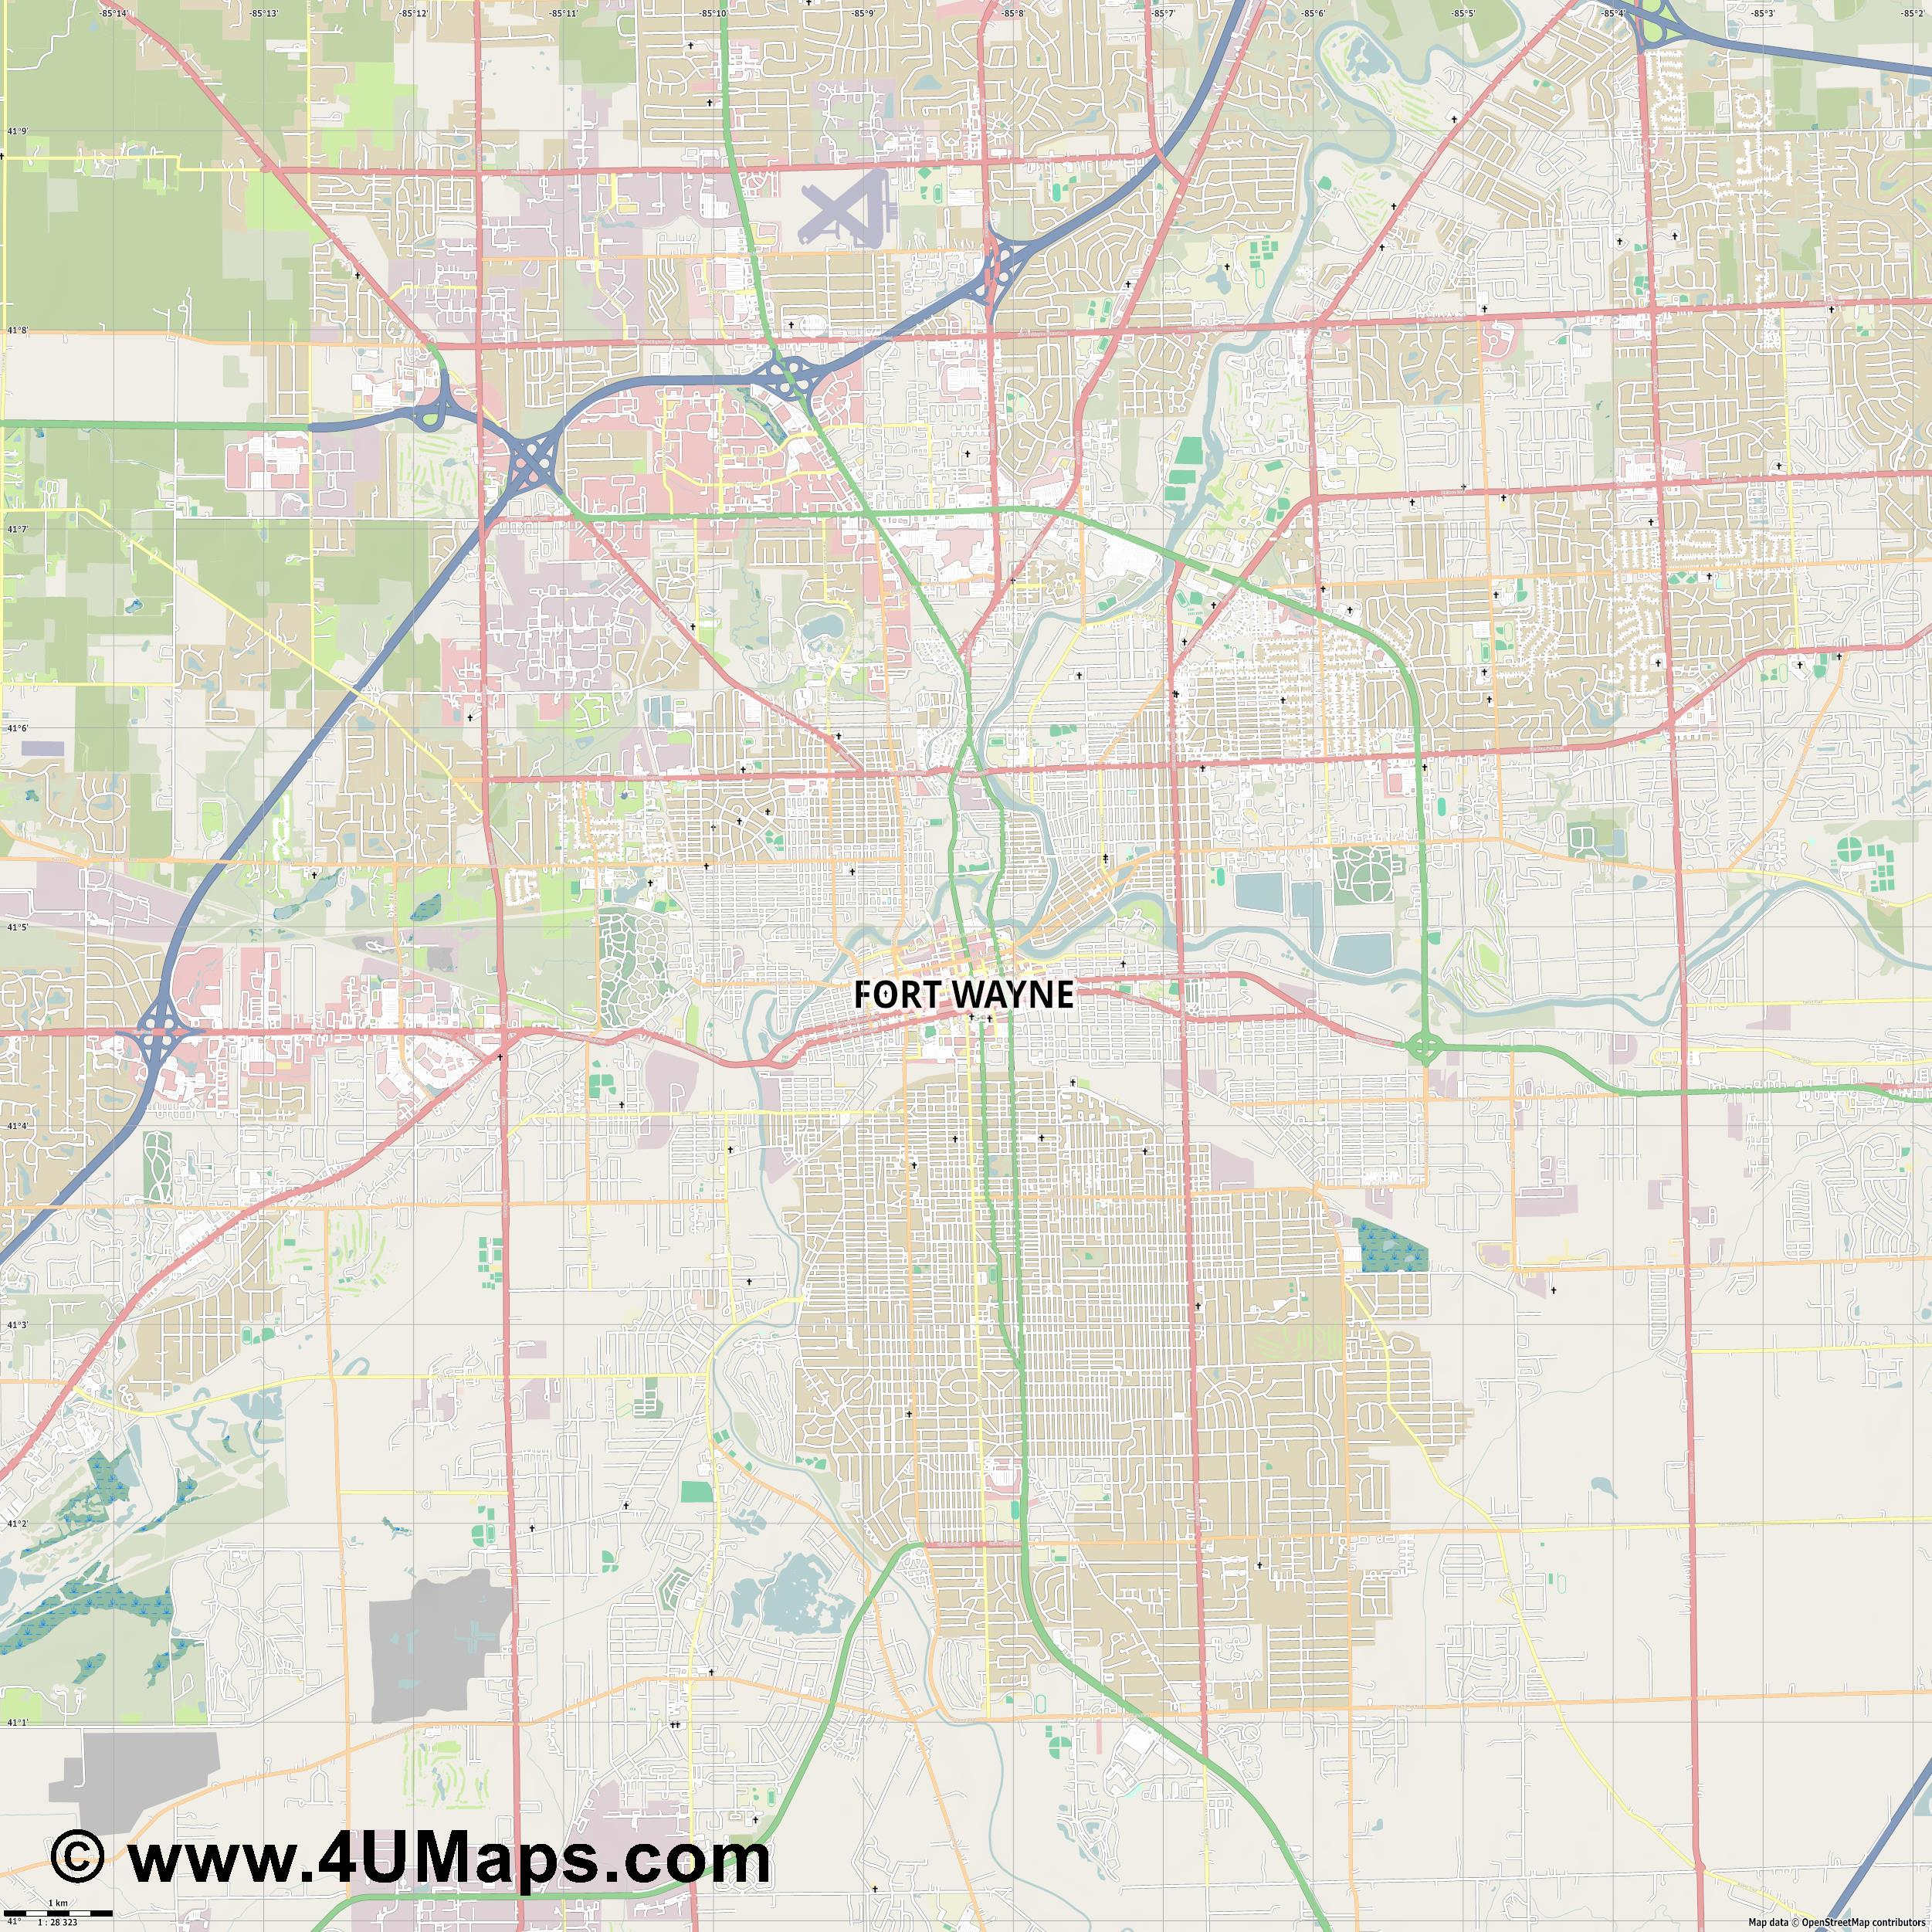 Fort Wayne  jpg high detail, large area preview vector city map